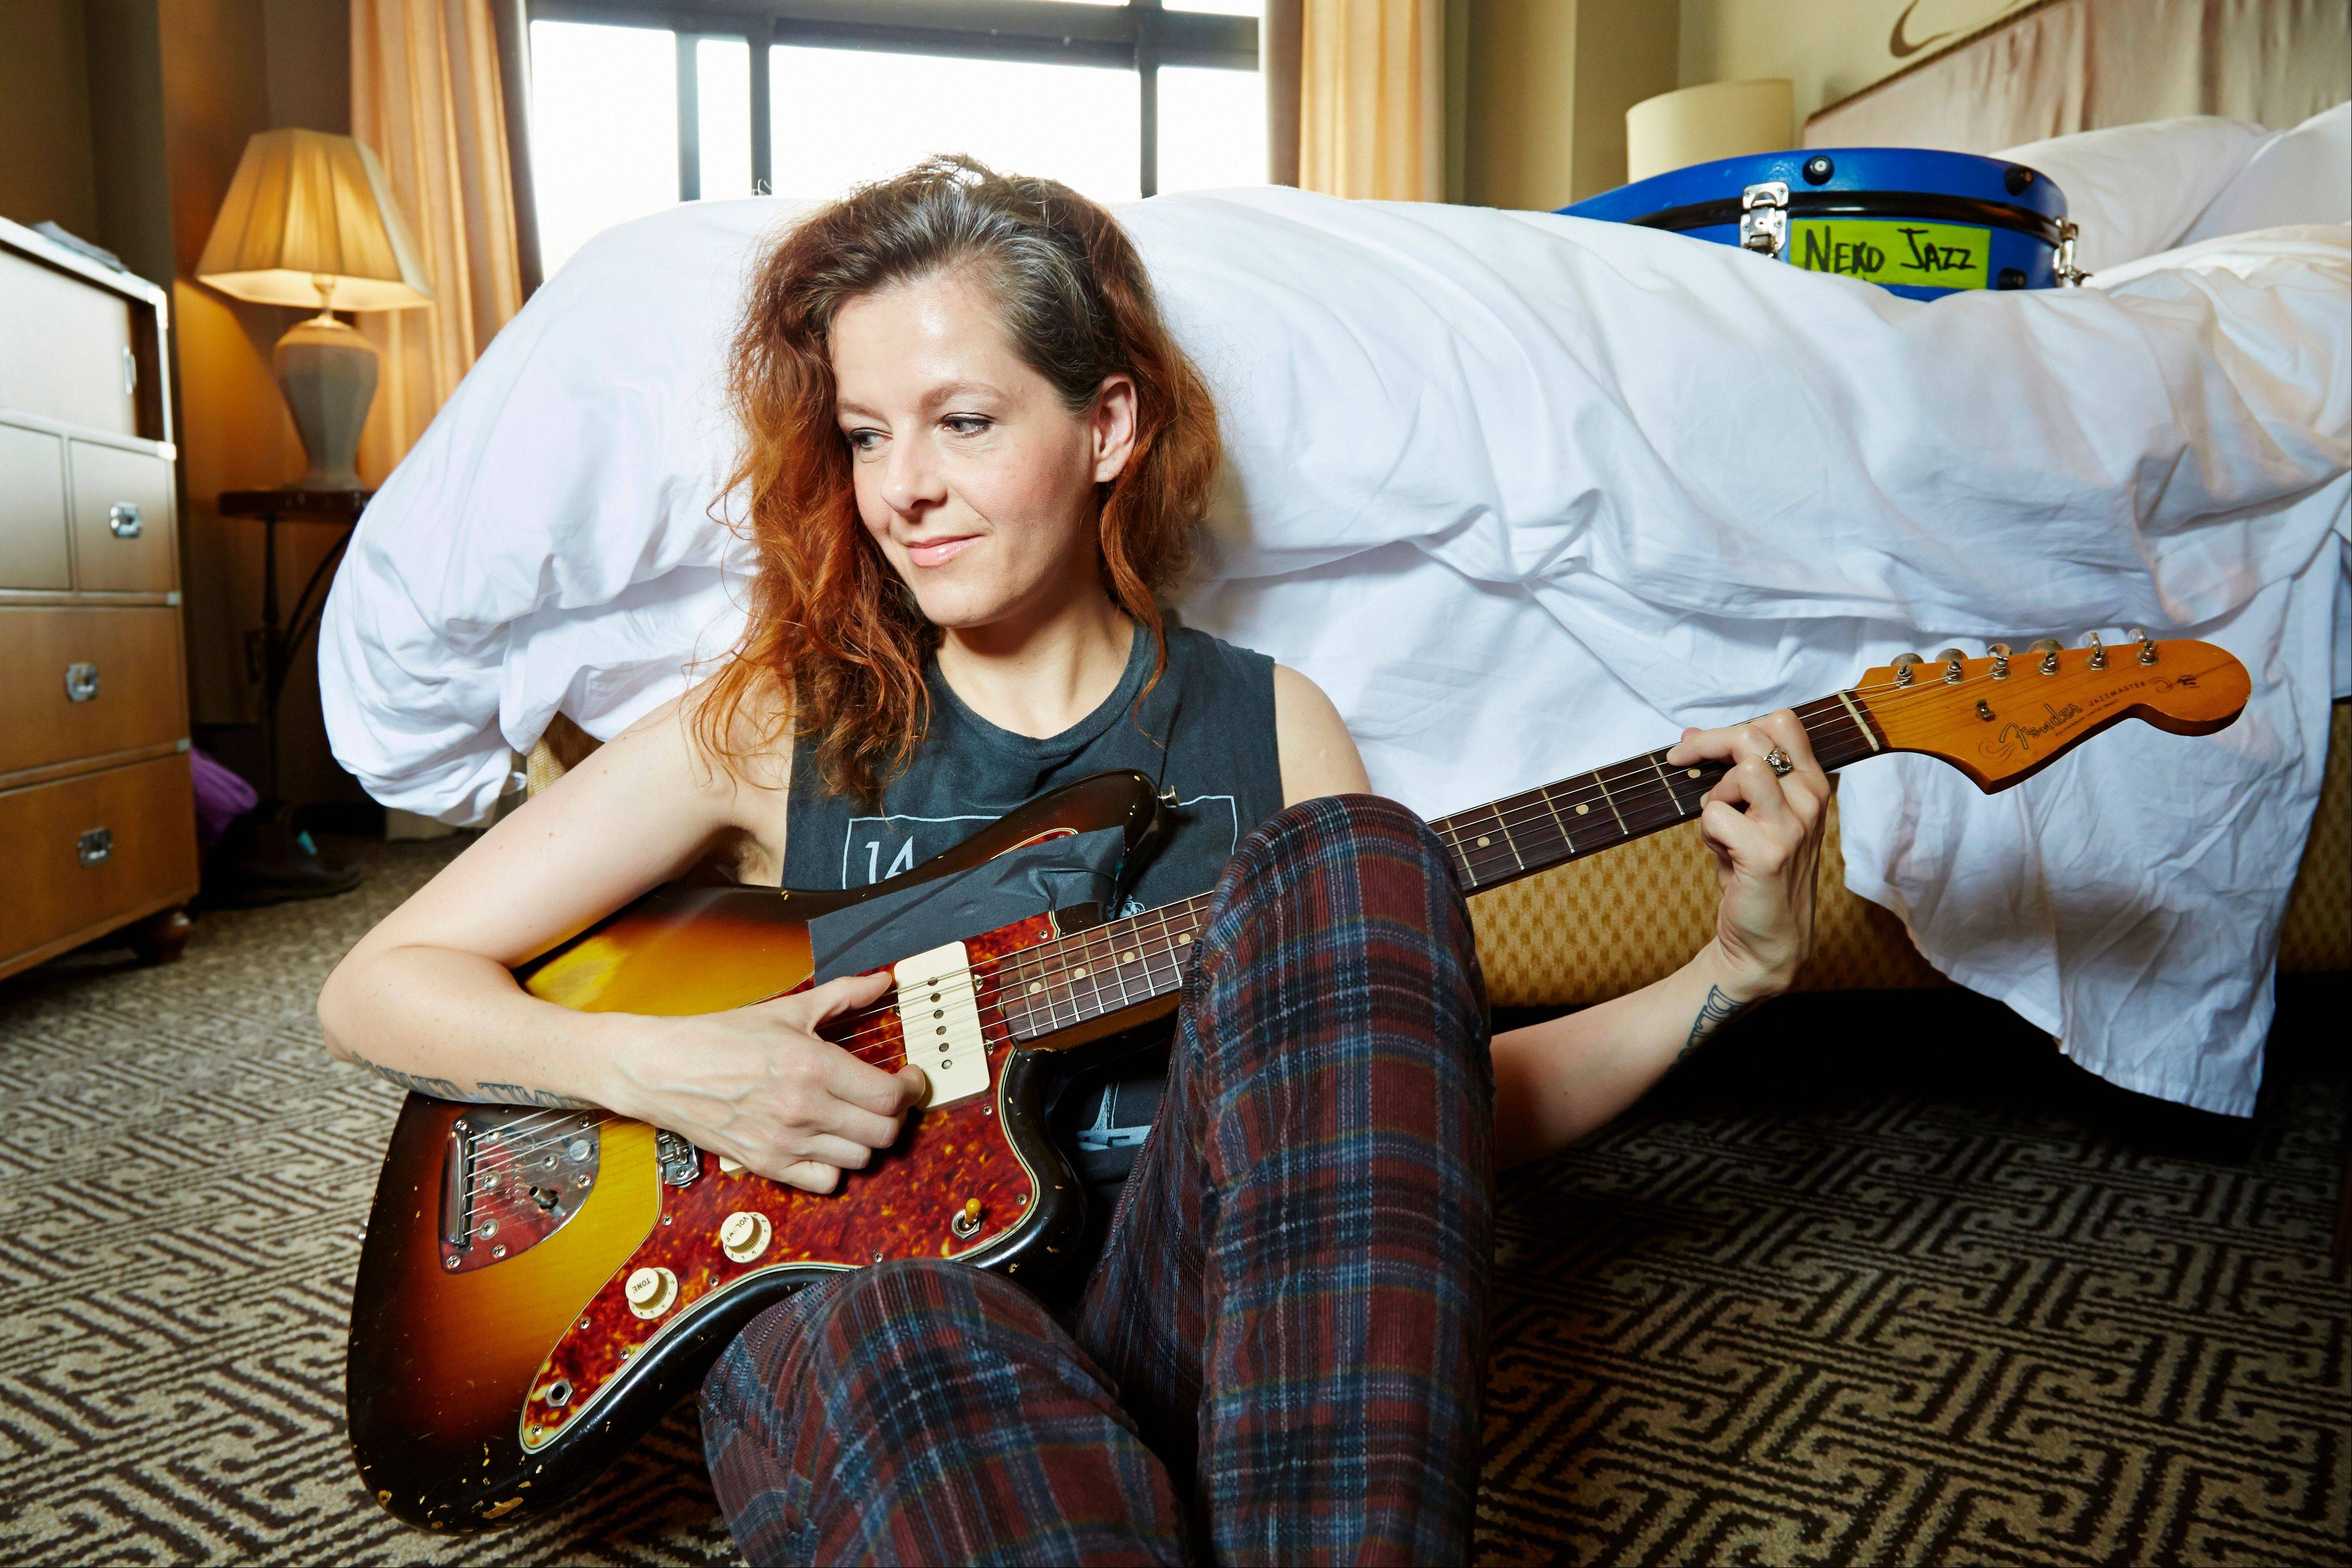 Singer-songwriter Neko Case relies on teamwork for her music.